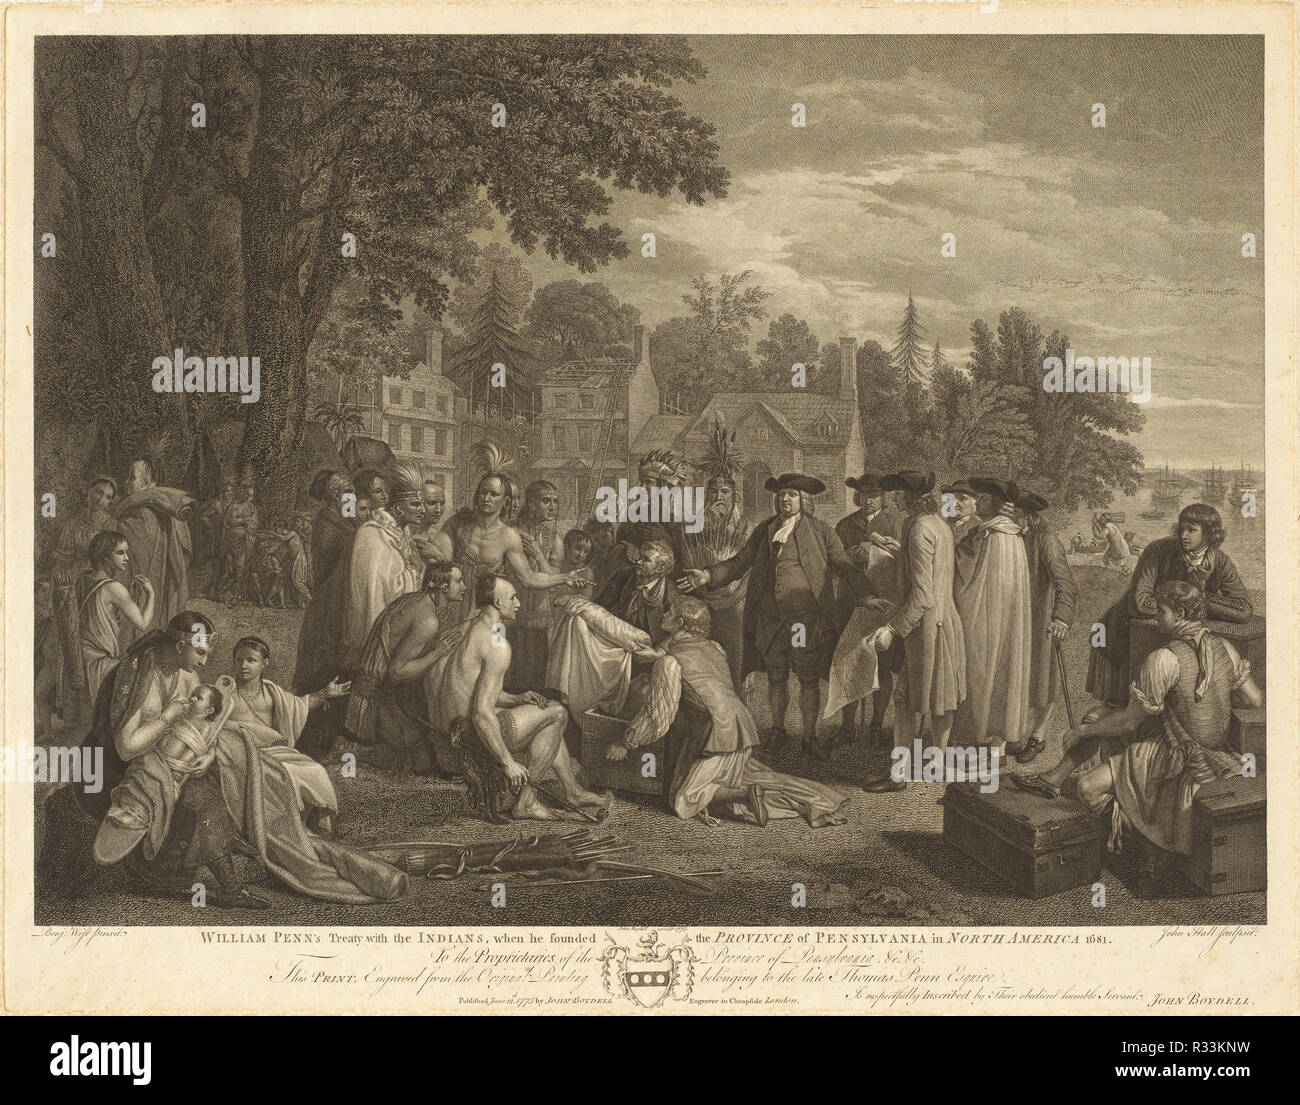 William Penn's Treaty with the Indians. Dated: 1775. Dimensions: image: 42.55 × 58.74 cm (16 3/4 × 23 1/8 in.)  sheet: 48.9 × 62.39 cm (19 1/4 × 24 9/16 in.). Medium: engraving. Museum: National Gallery of Art, Washington DC. Author: John Hall after Benjamin West. Benjamin West. Stock Photo